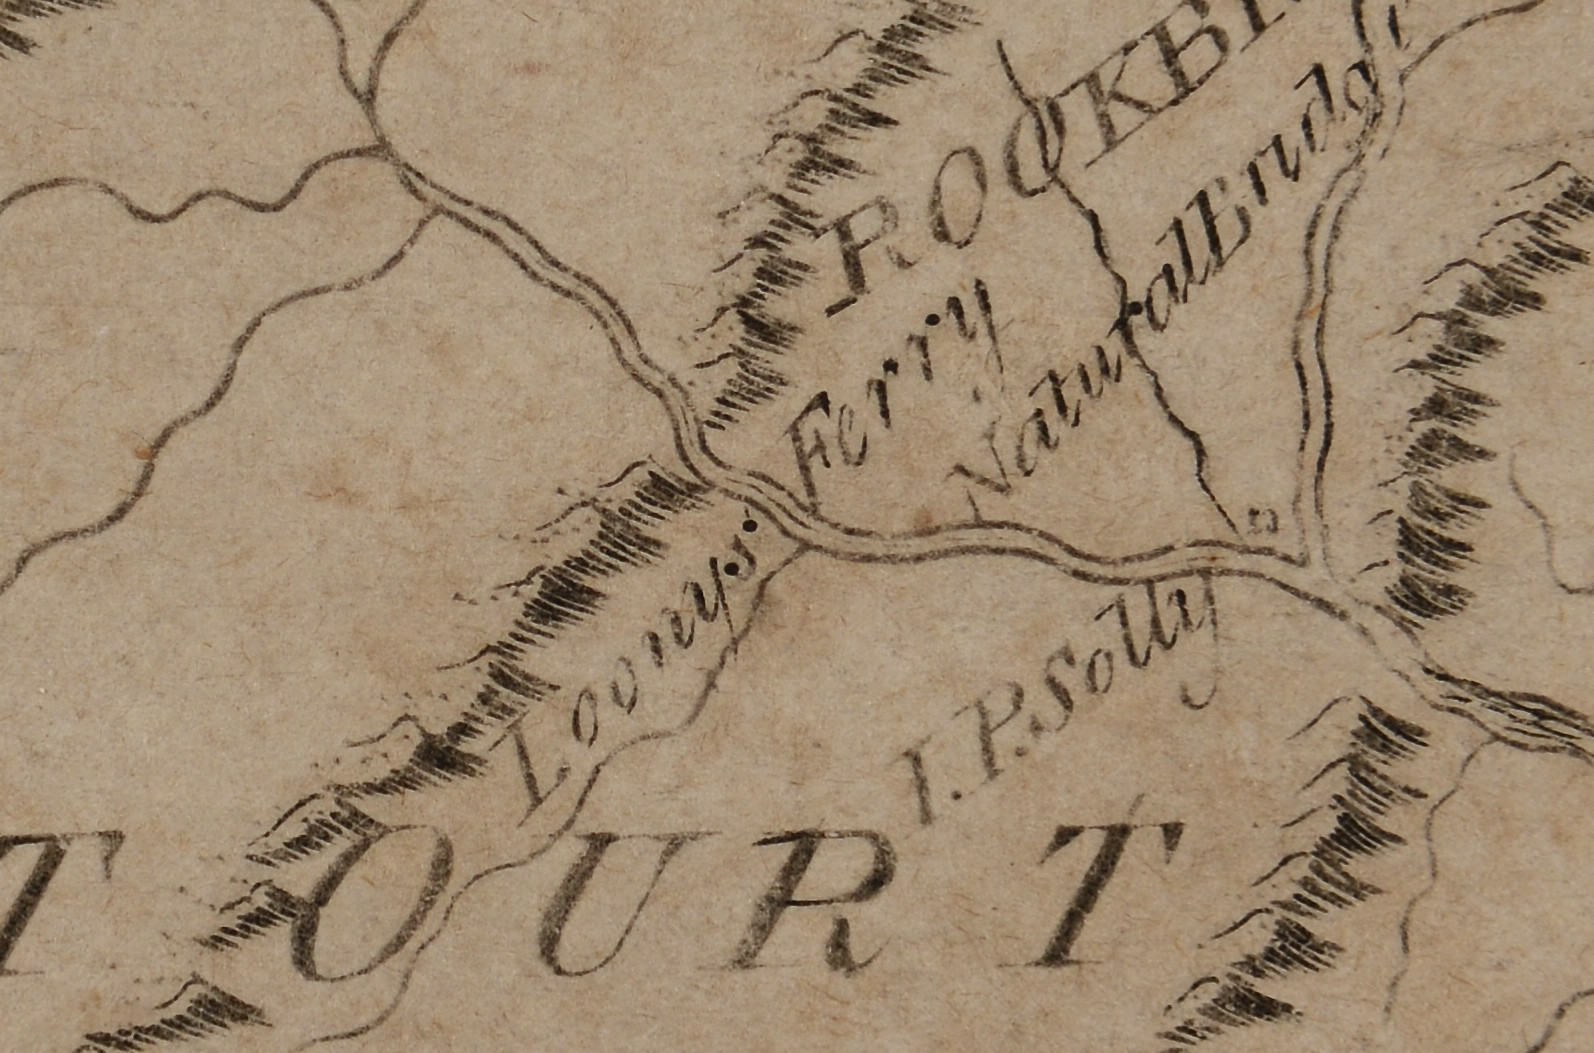 Lot 402: 1809 Map of Virginia, Samuel Lewis